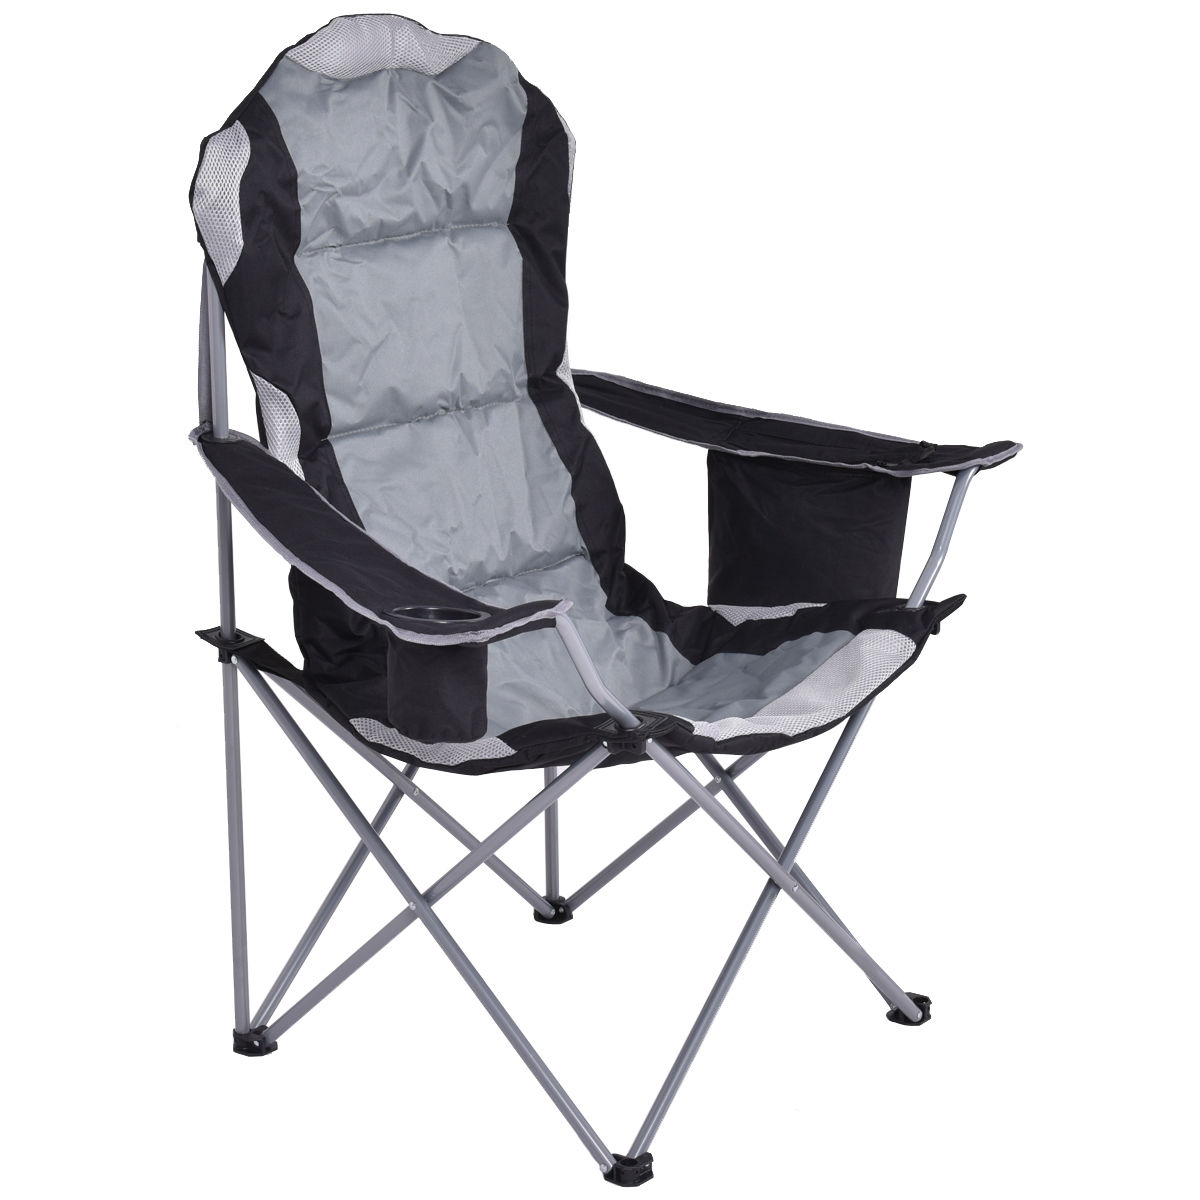 Fishing Camping Chair Seat Cup Holder Beach Picnic Outdoor Portable Folding Bag-Gray